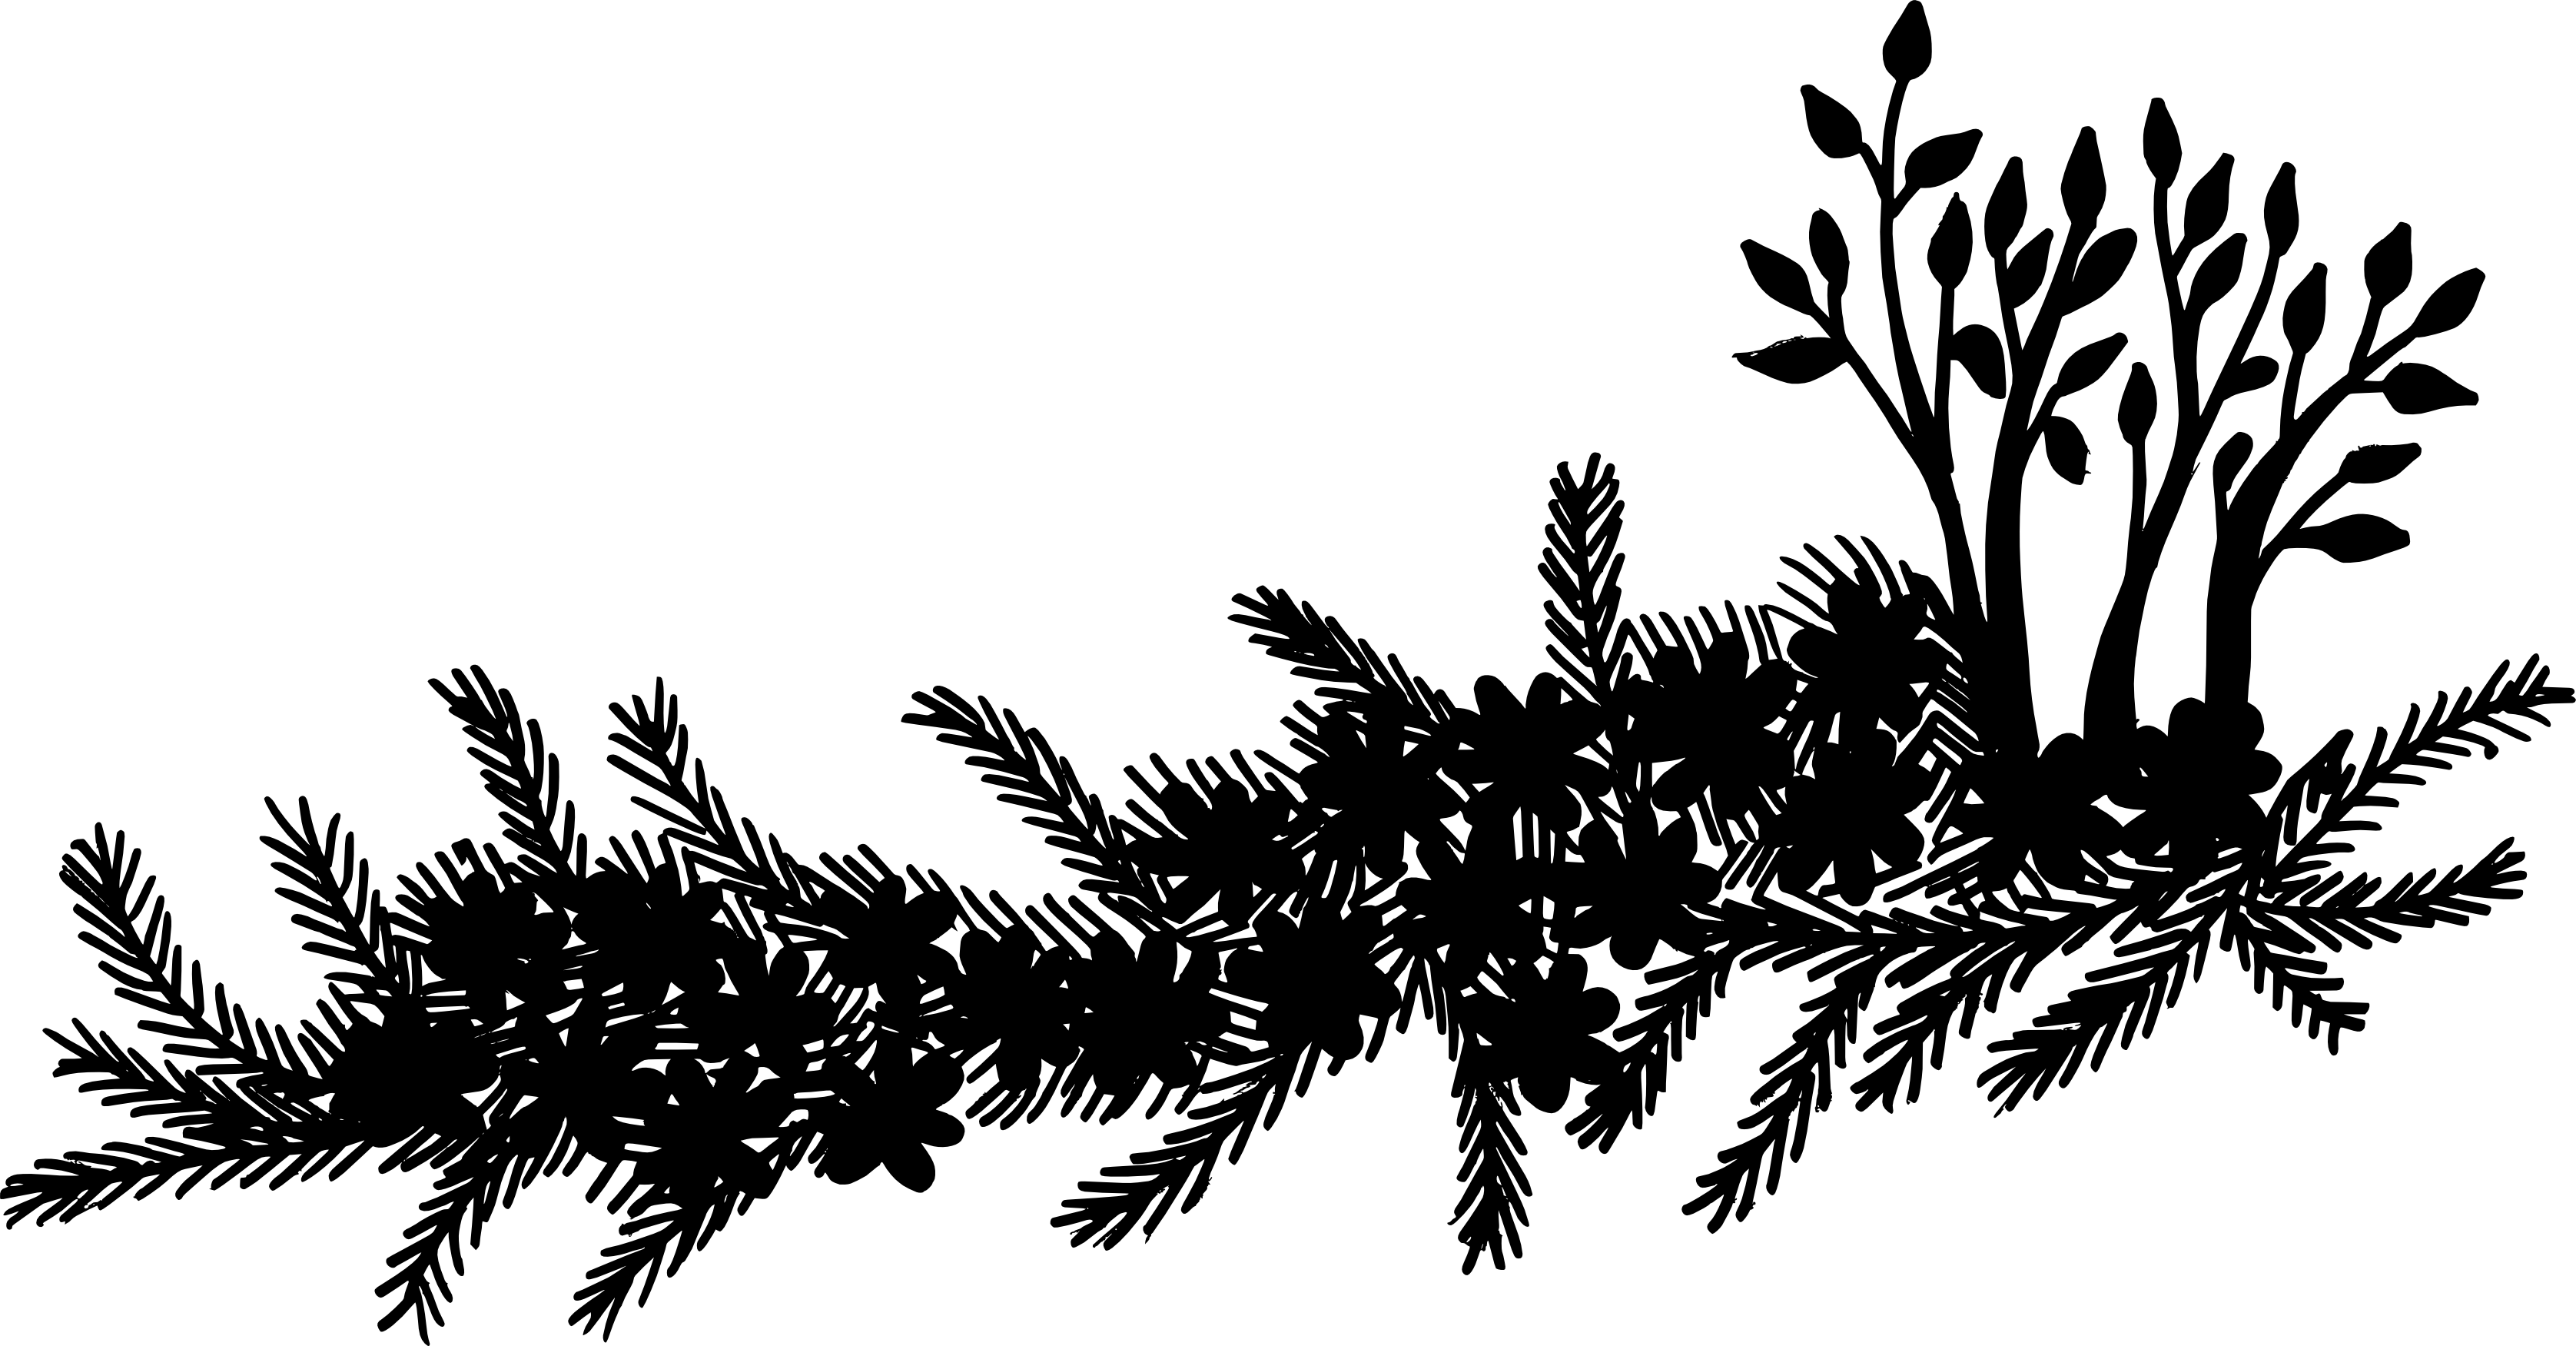 Plant silhouette png. Nature background transparent